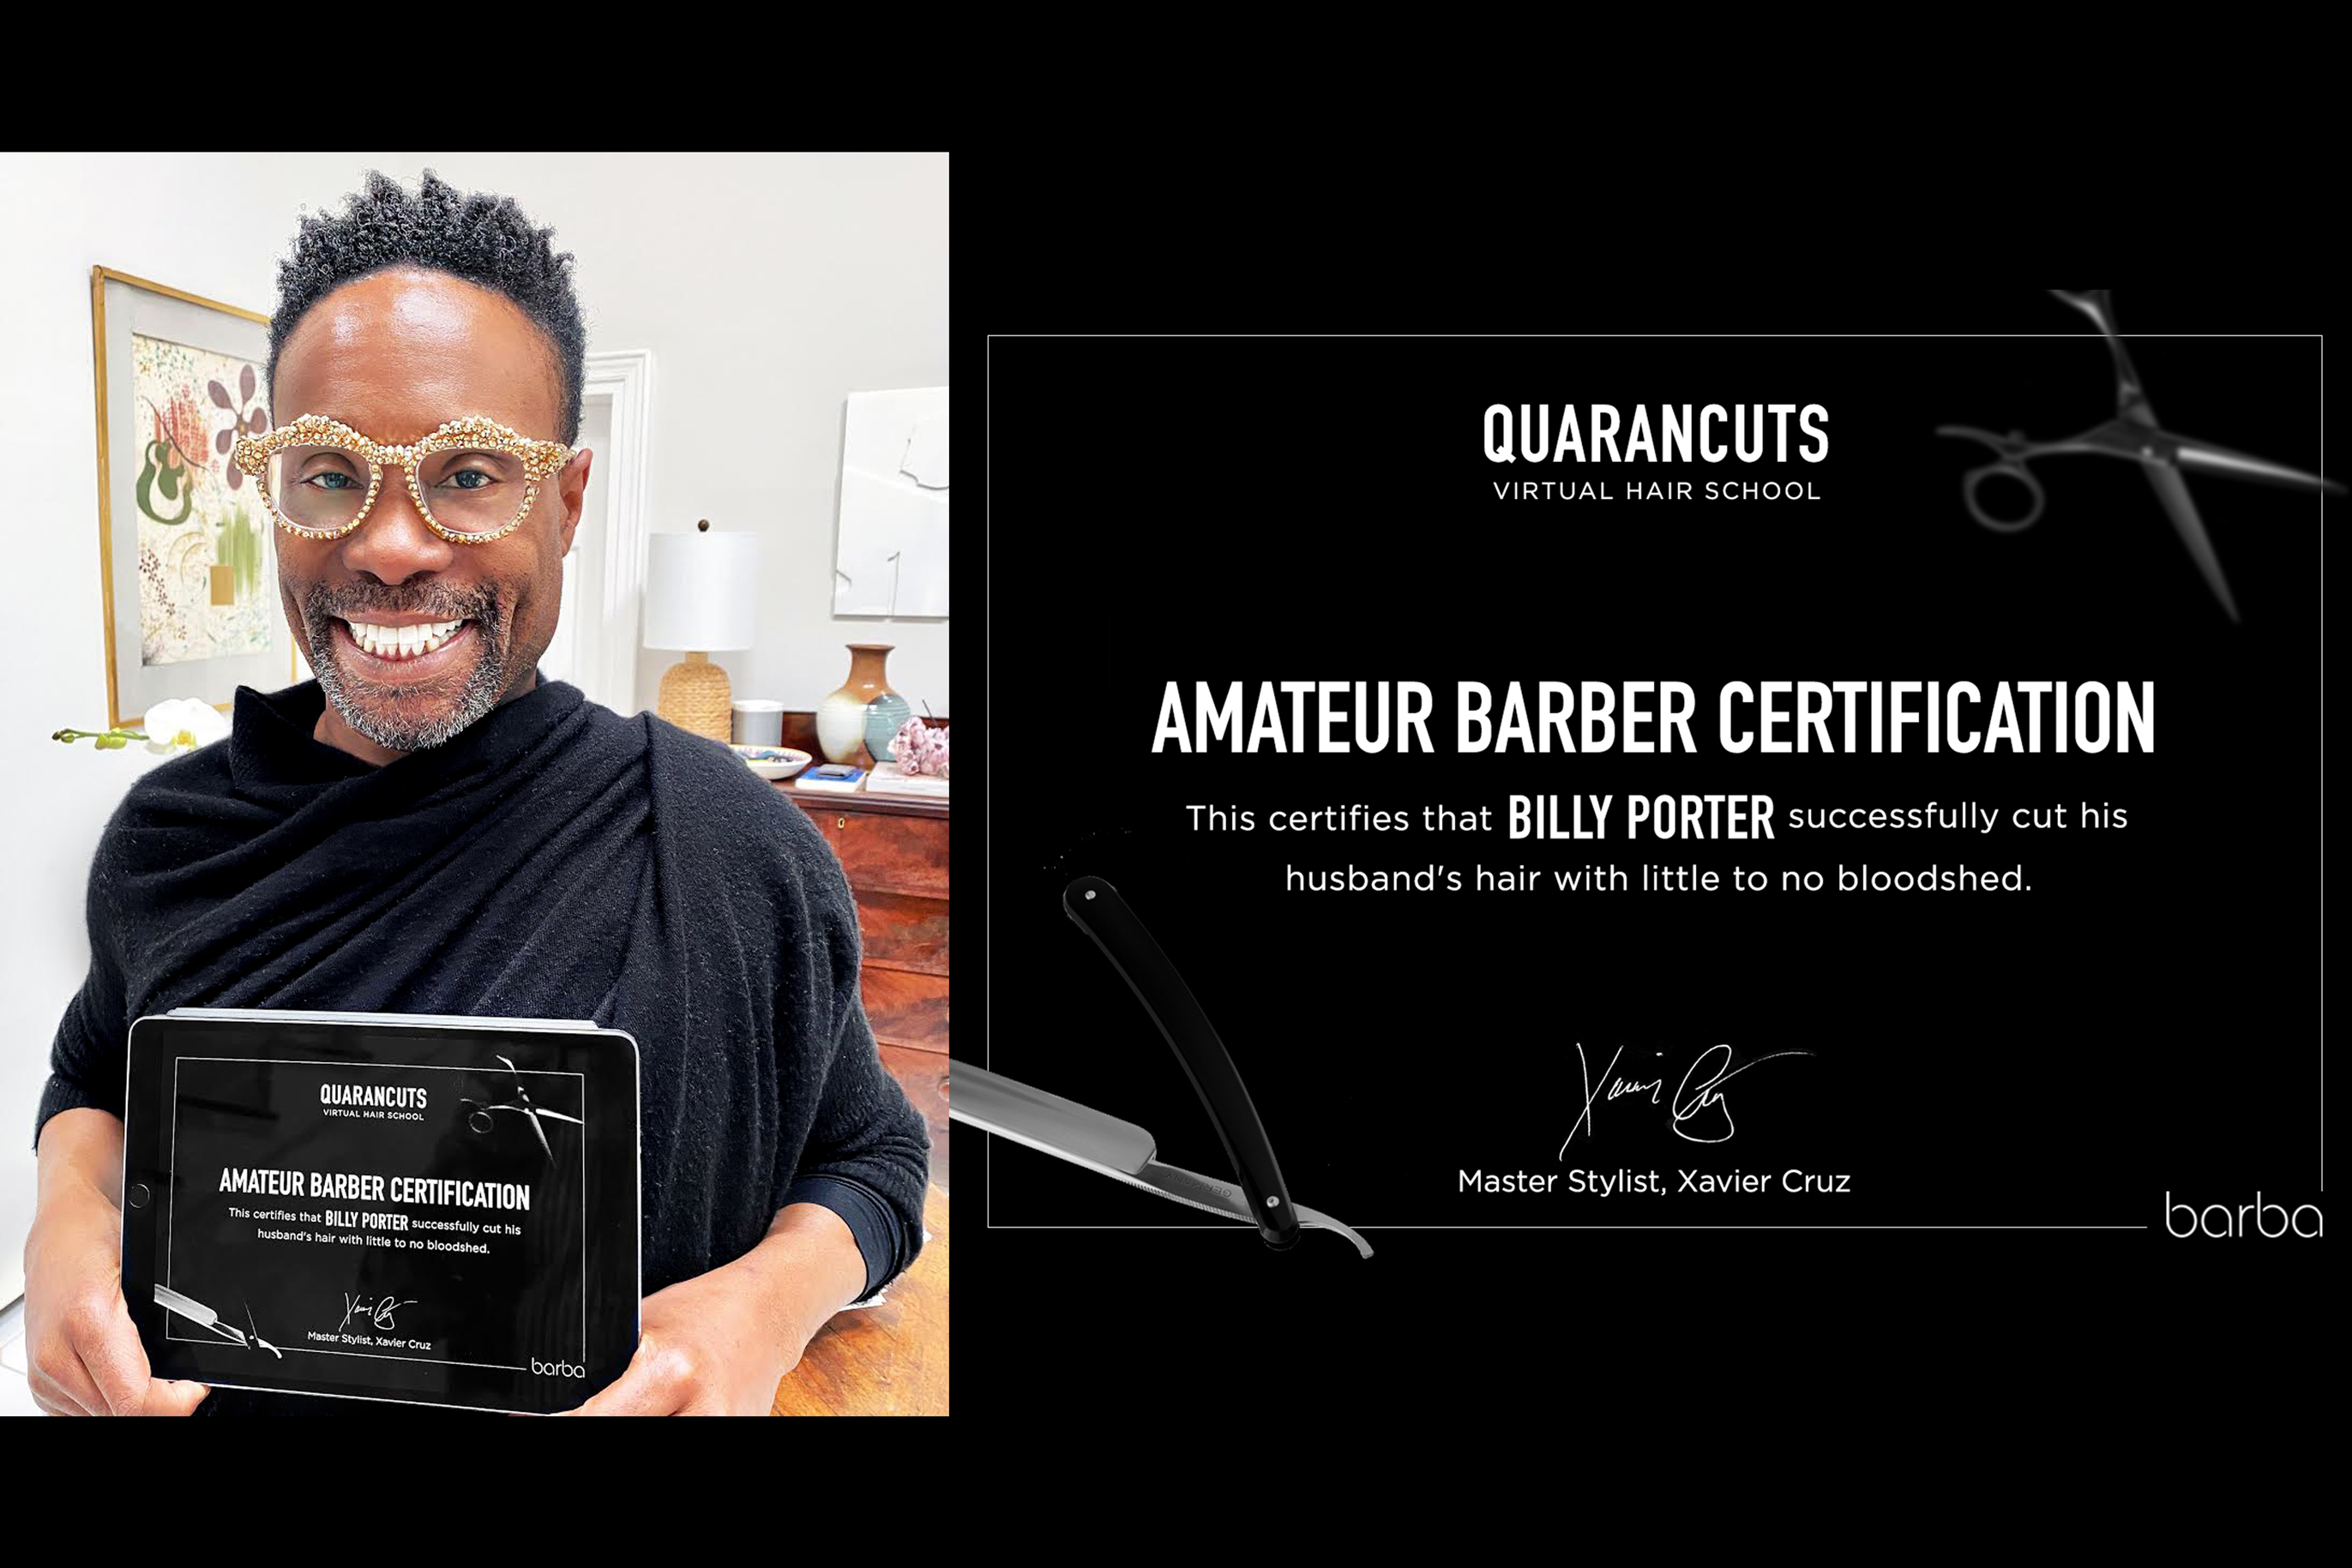 Barba: Quarancuts Hair School